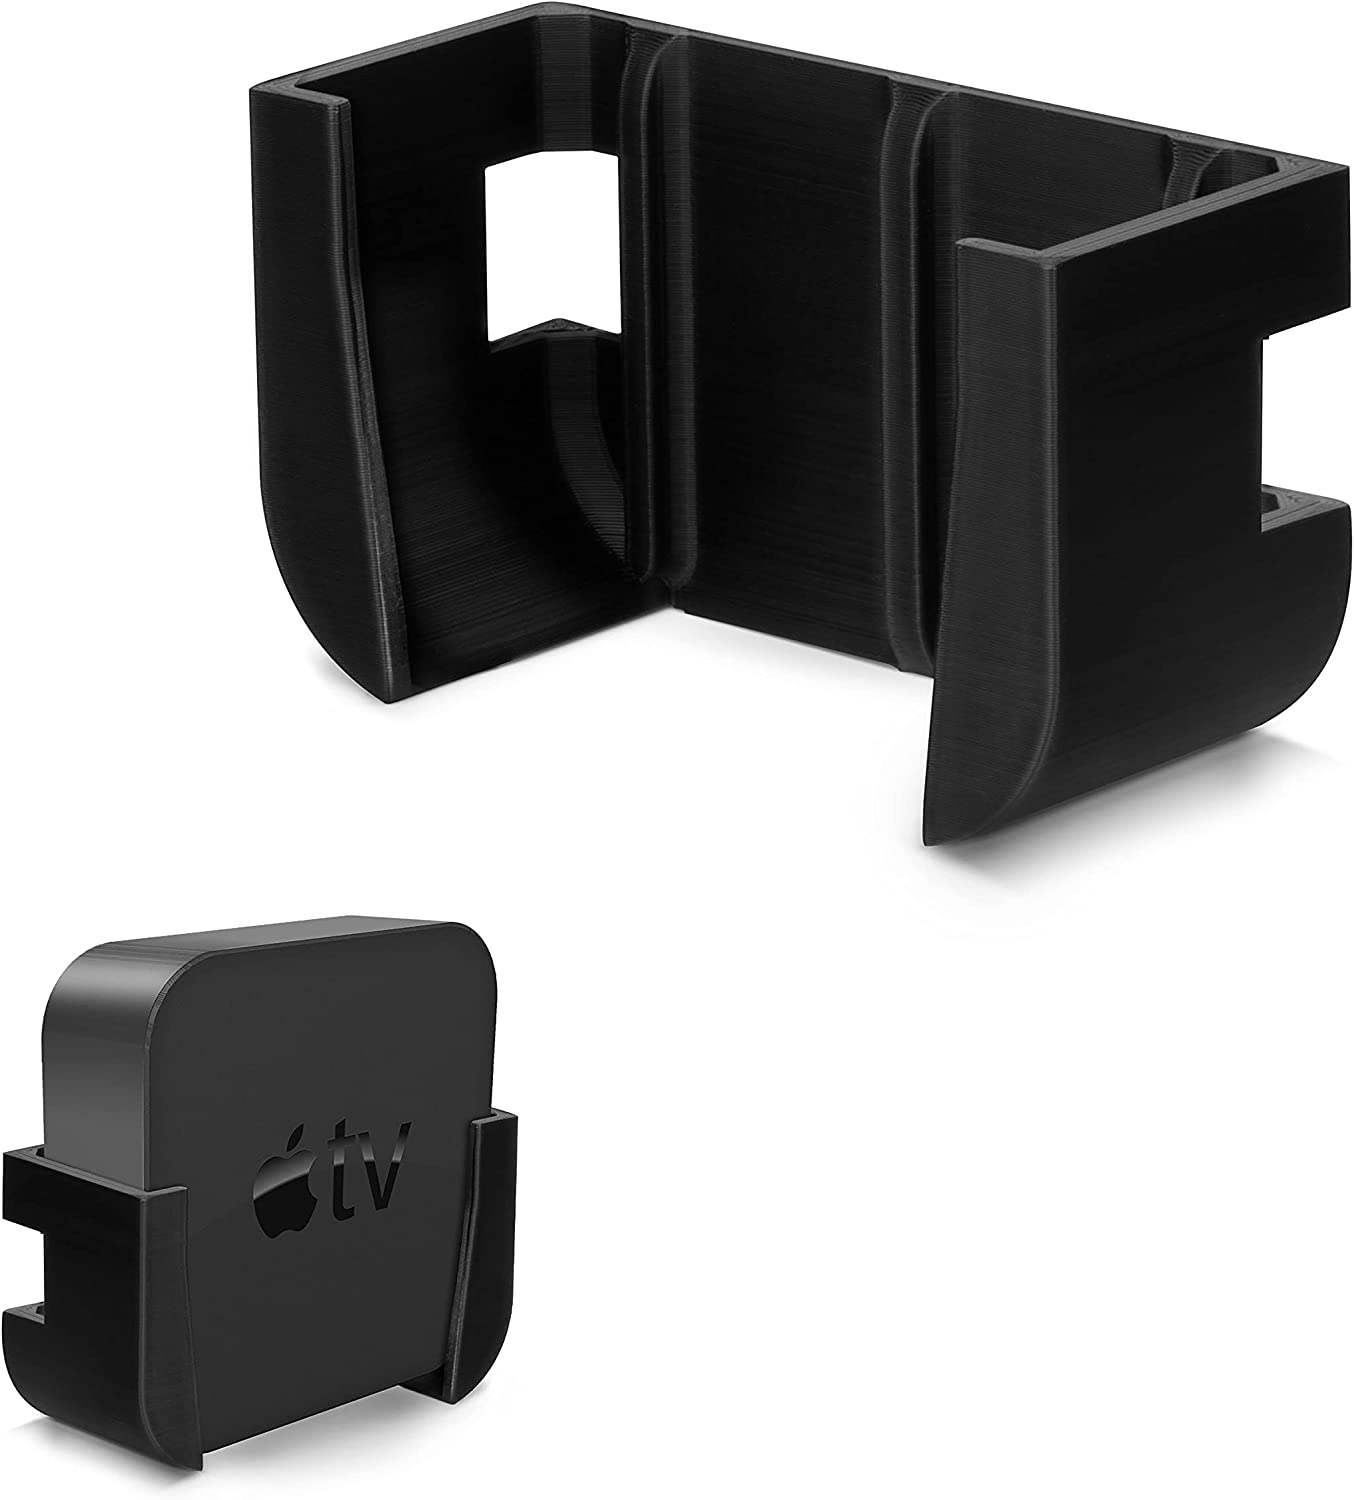 Max 90% New products, world's highest quality popular! OFF Brainwavz Apple TV Mount with VHB App Tape All Compatible -